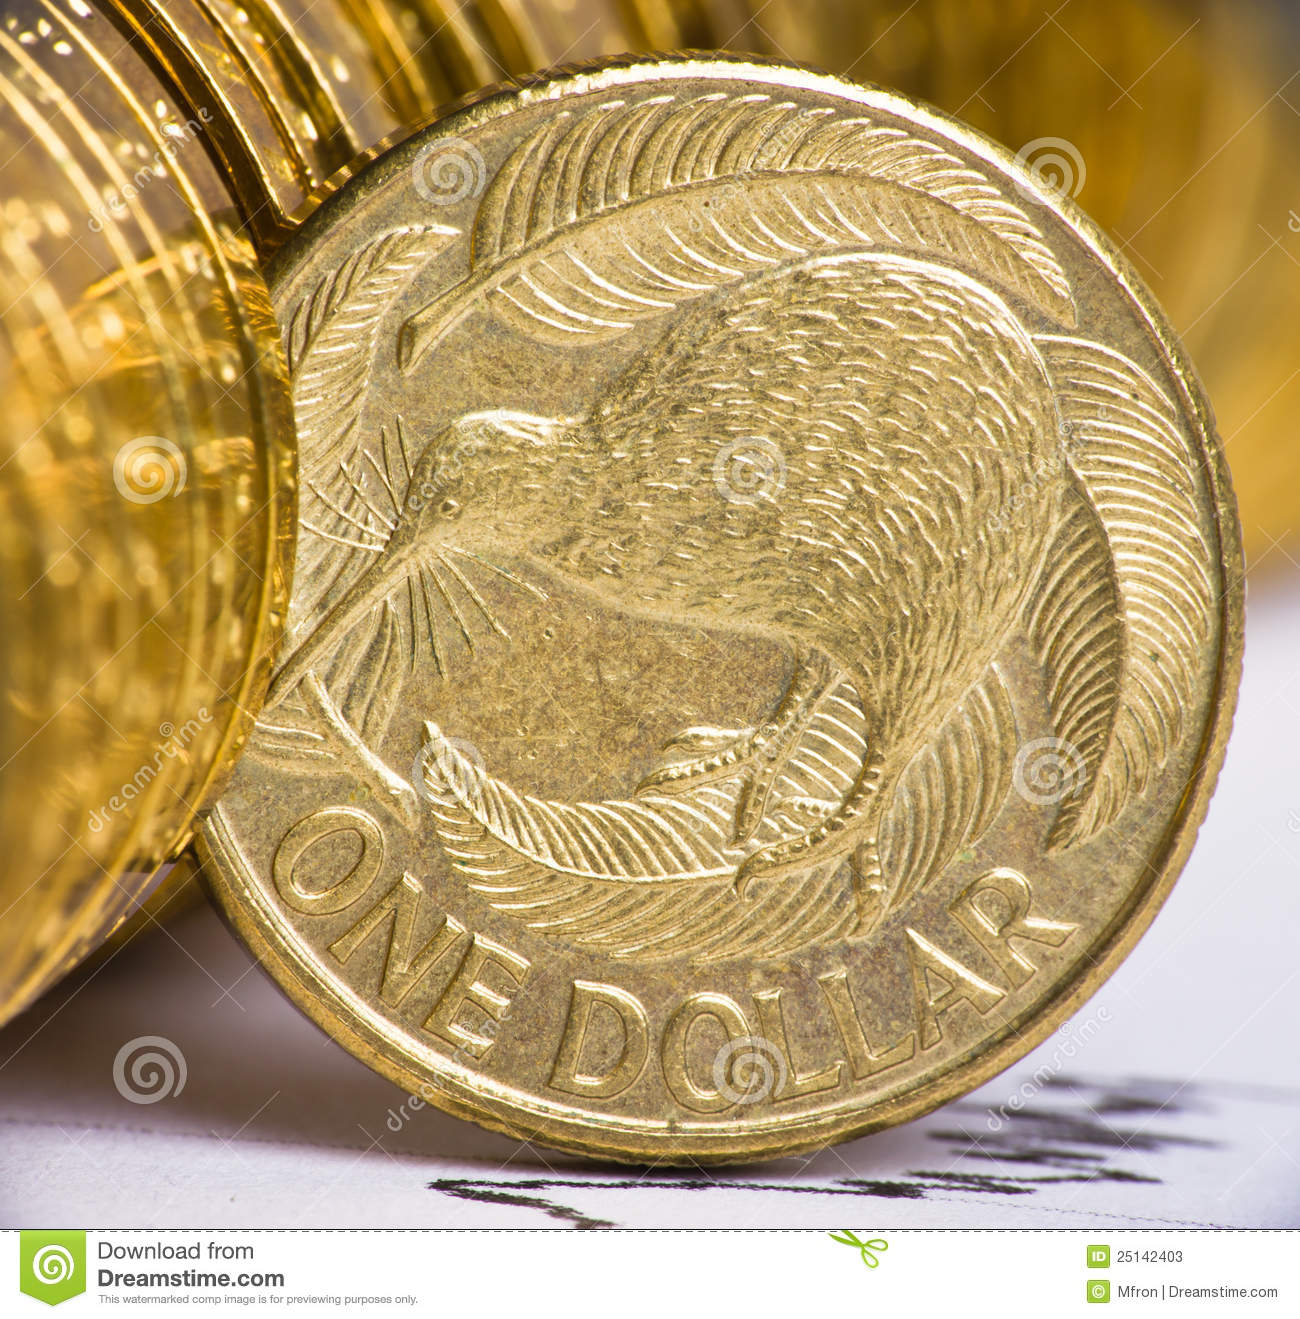 Currency and symbol choice image symbol and sign ideas new zealand currency and symbol quot country new zealand currency and symbol new zealand dollar currency buycottarizona